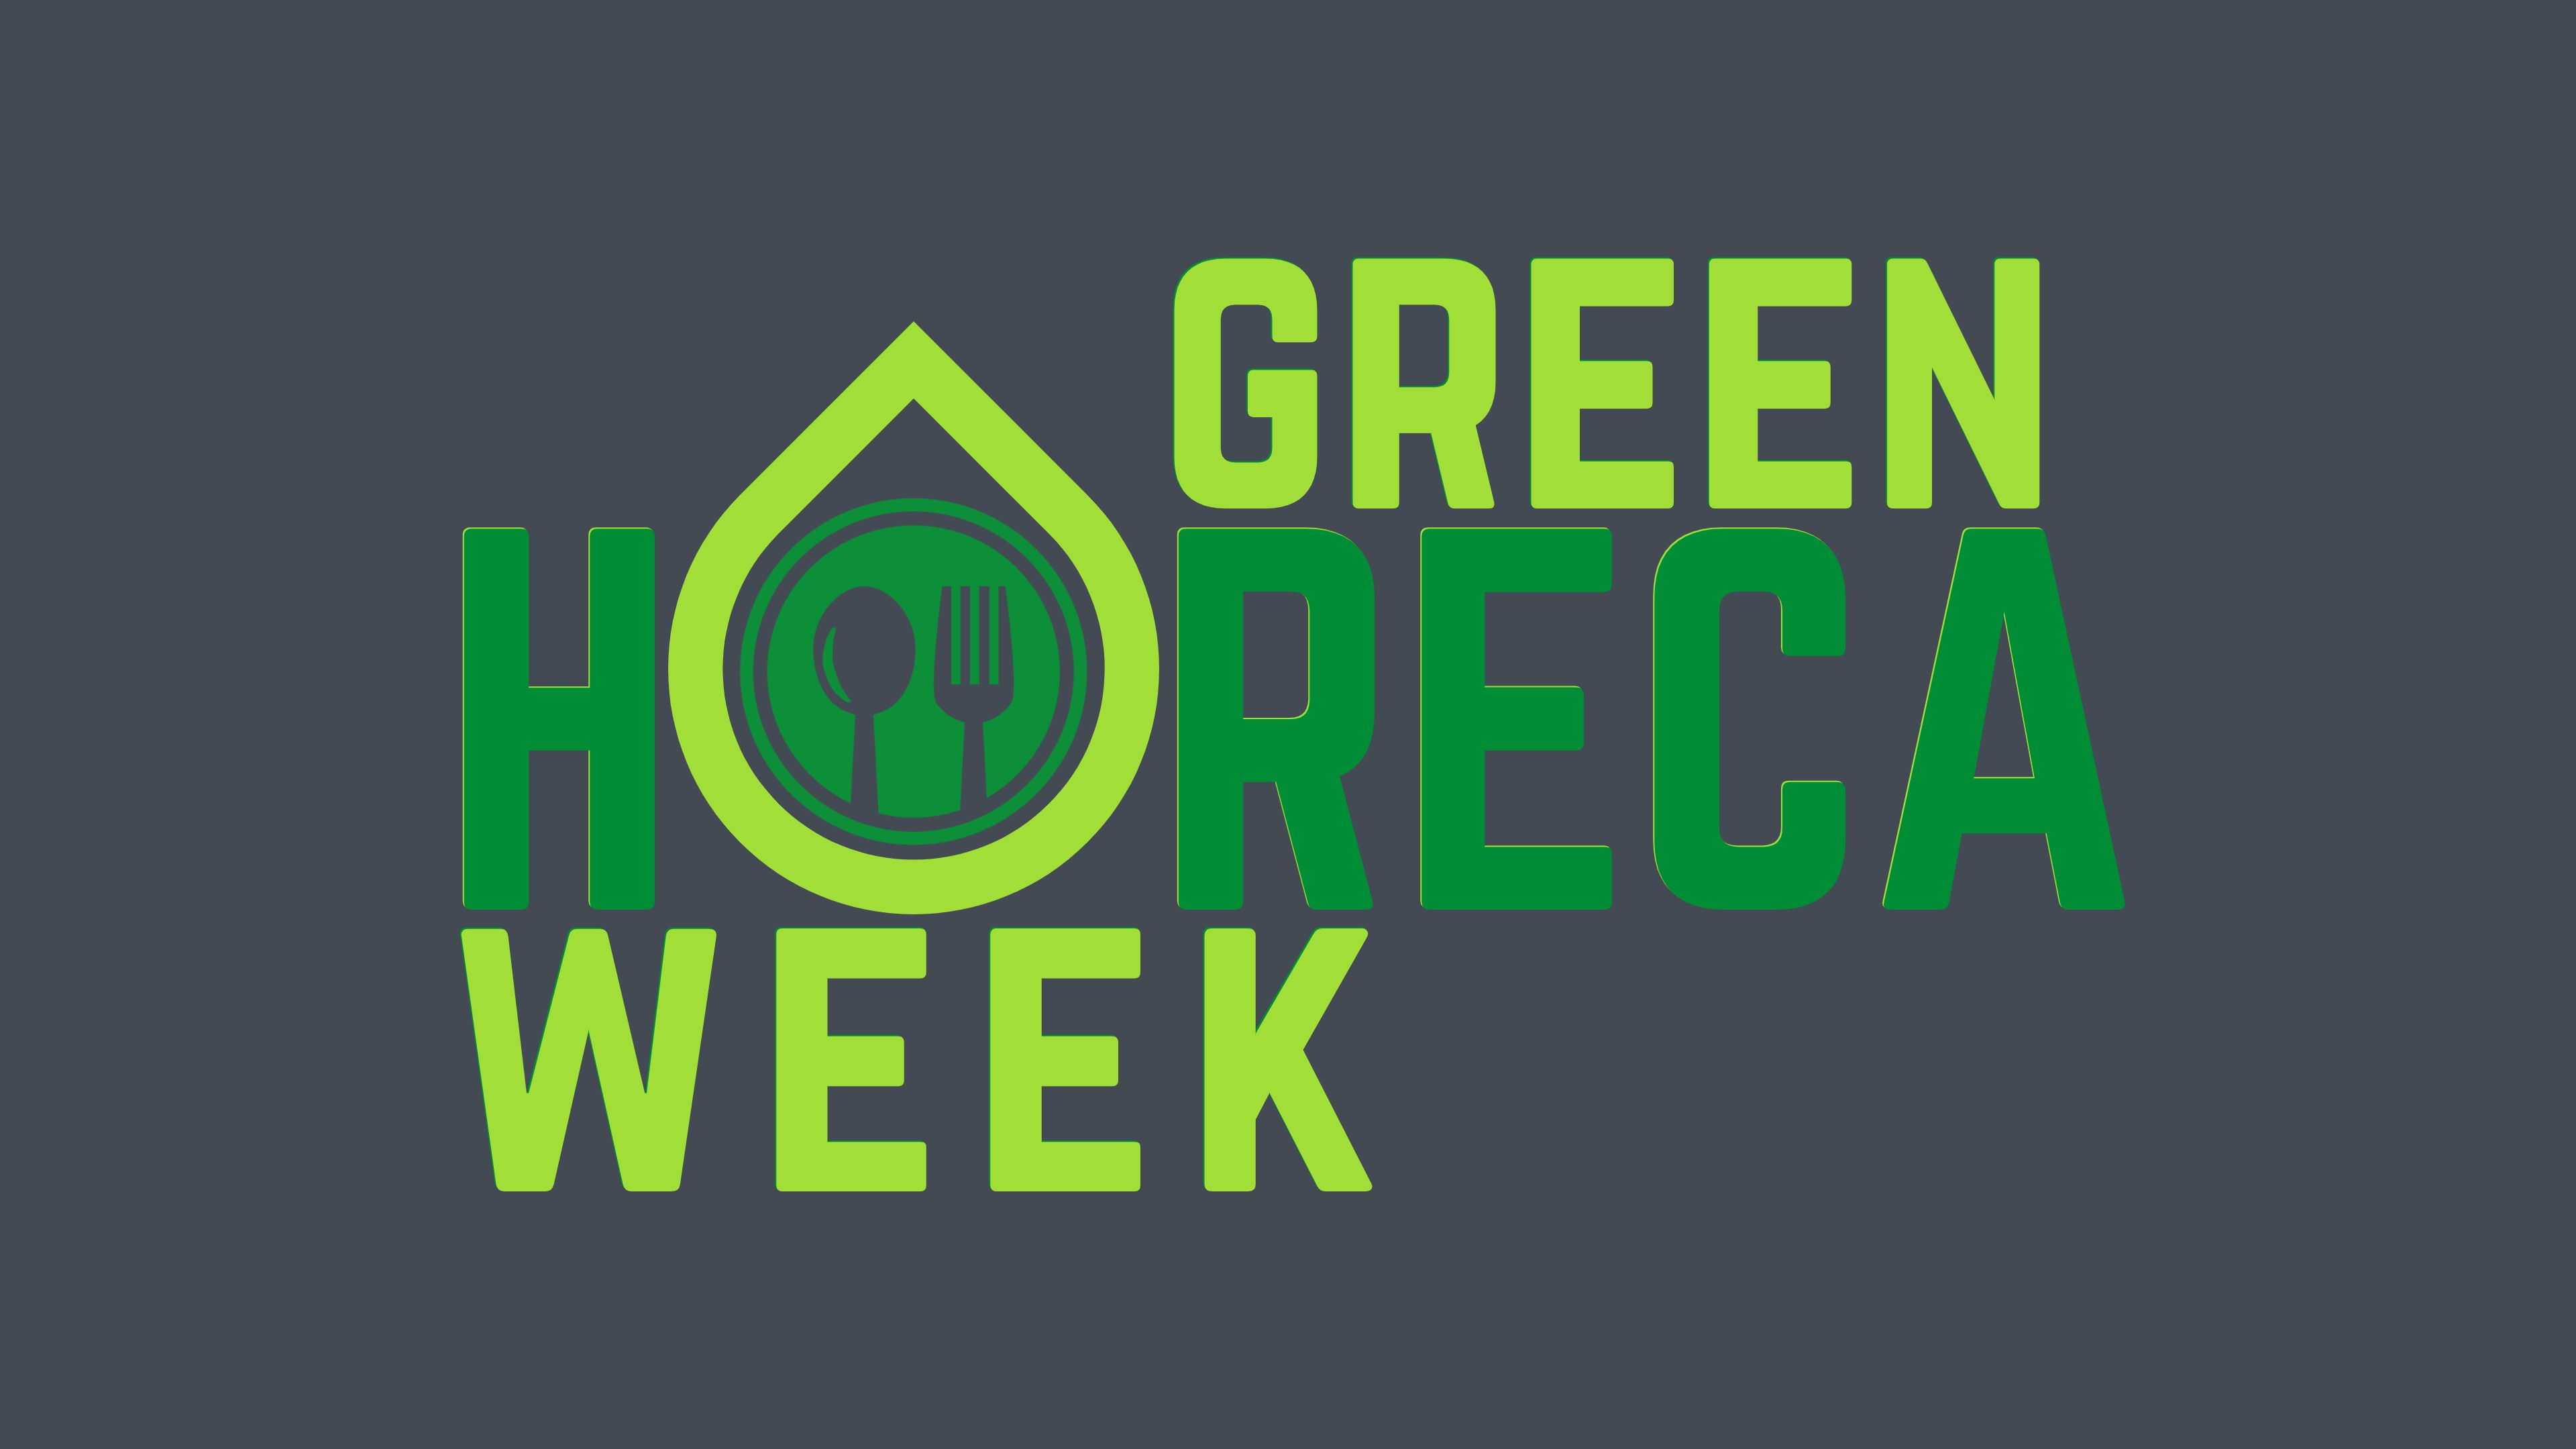 Green horeca week